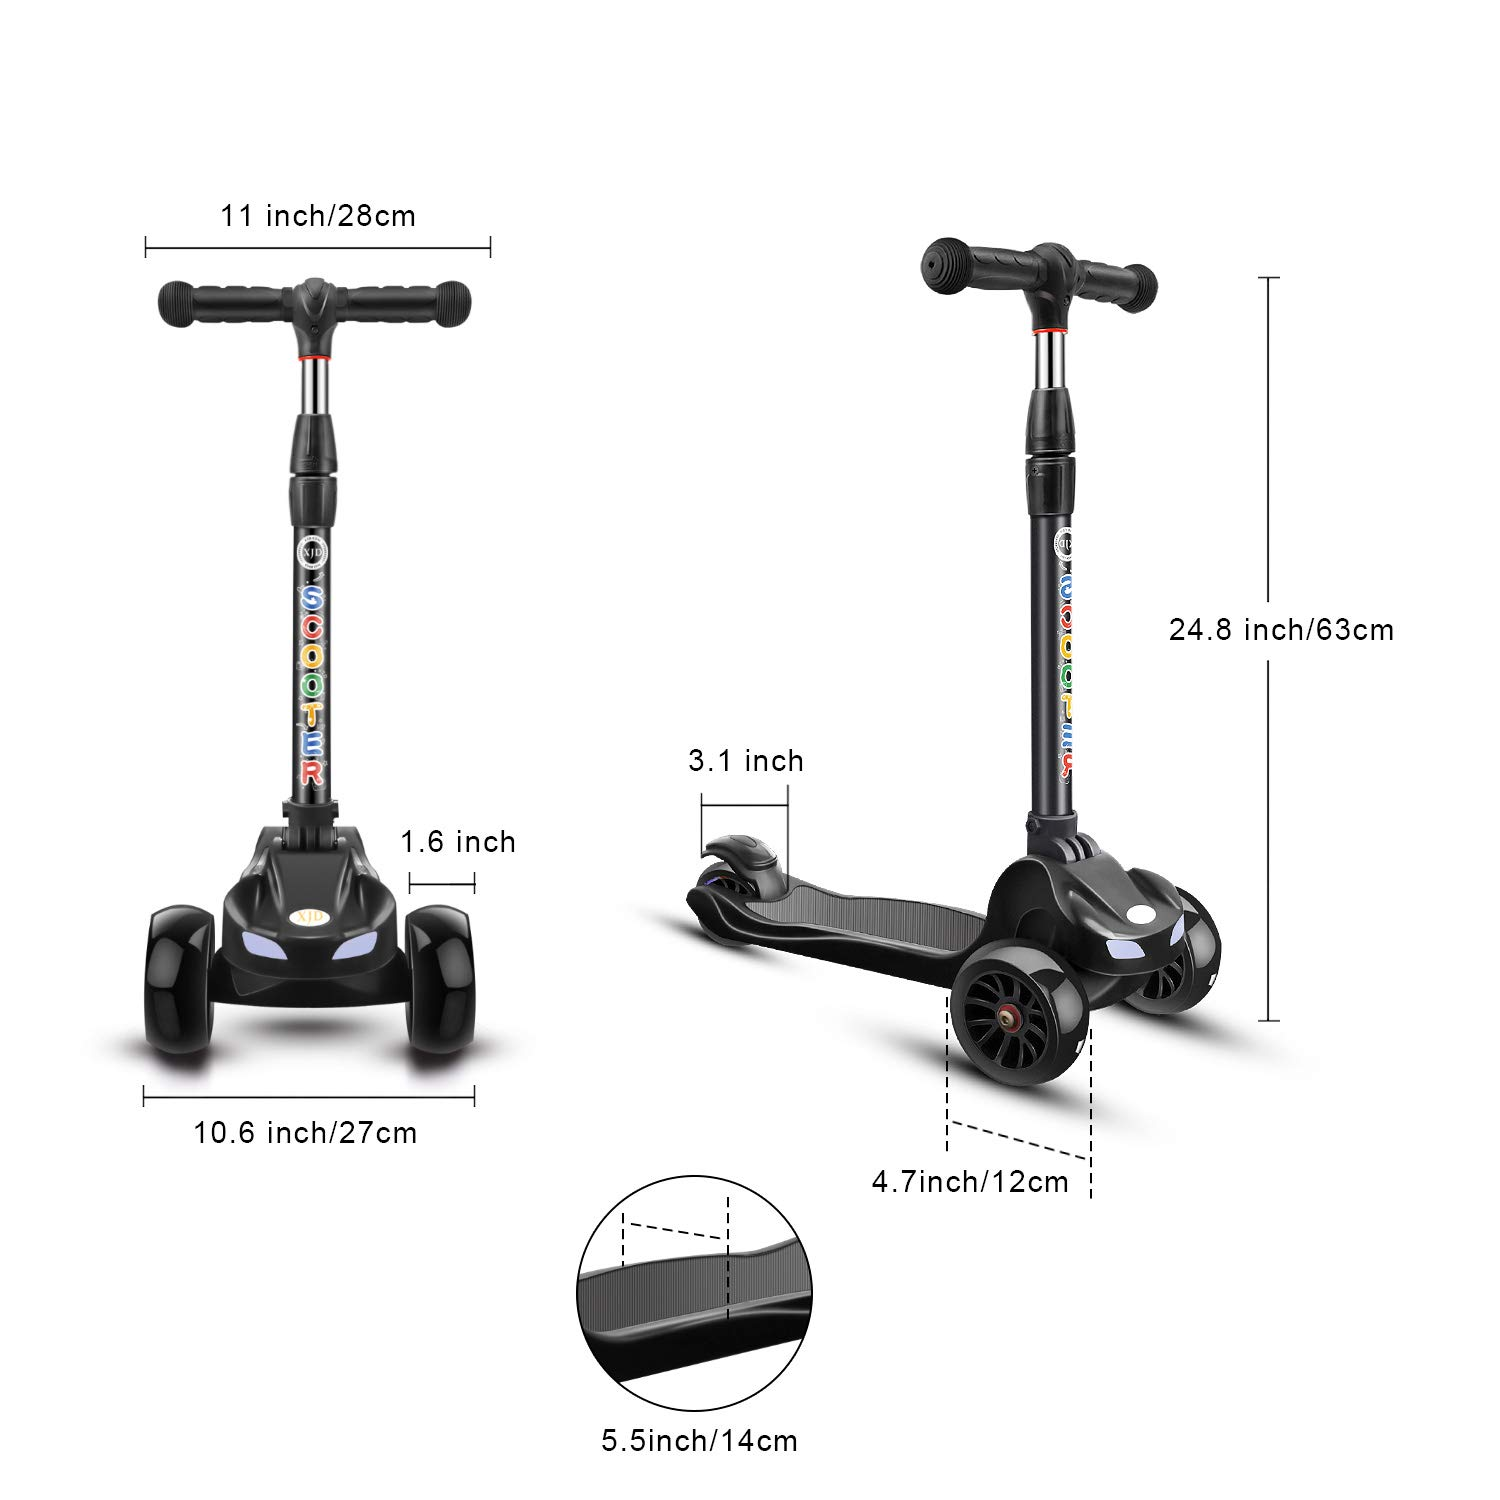 Amazon.com: XJD Kick Scooter para niños 3 ruedas scooter 4 ...